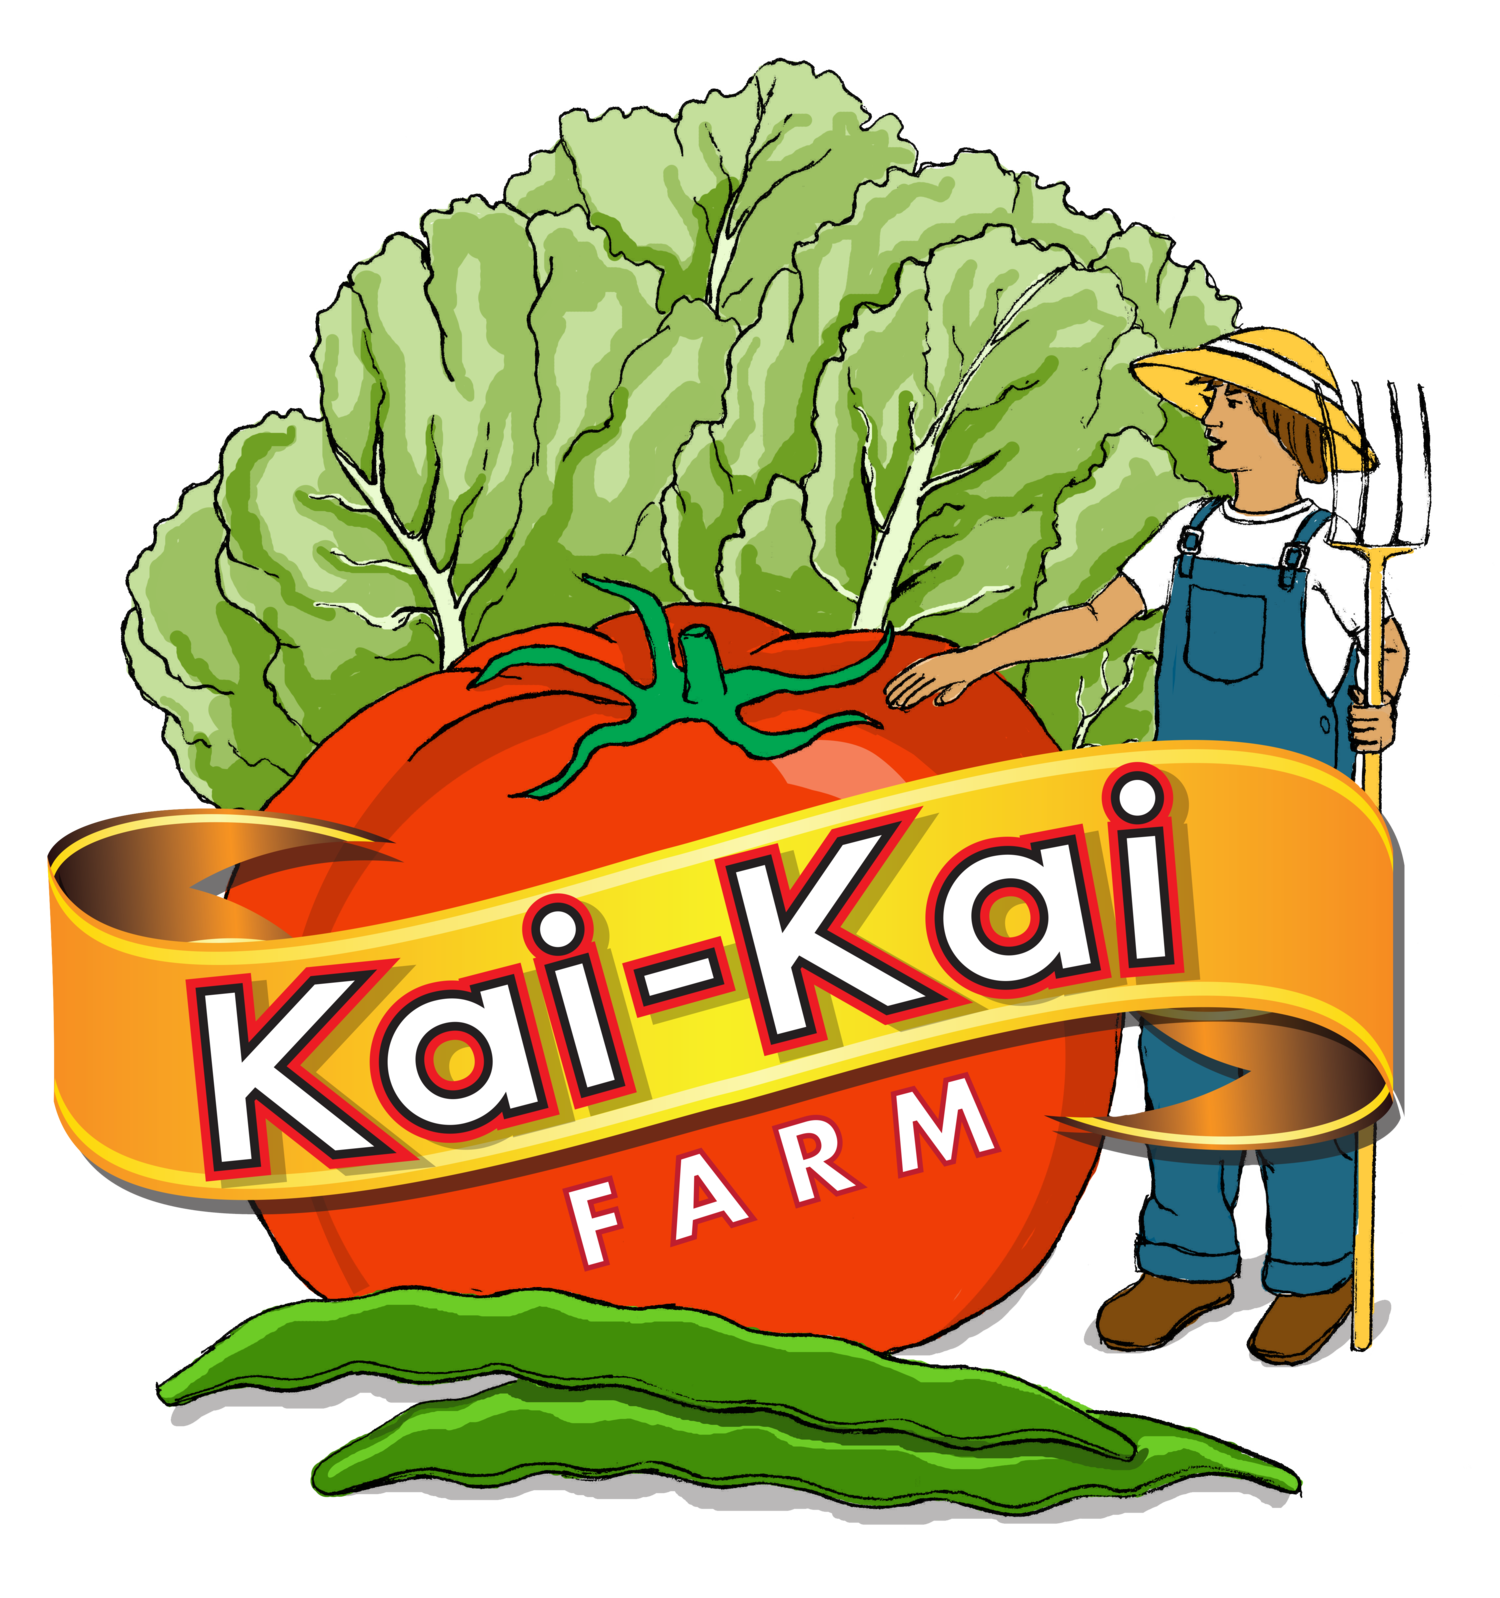 Farm clipart cabbage. Kai